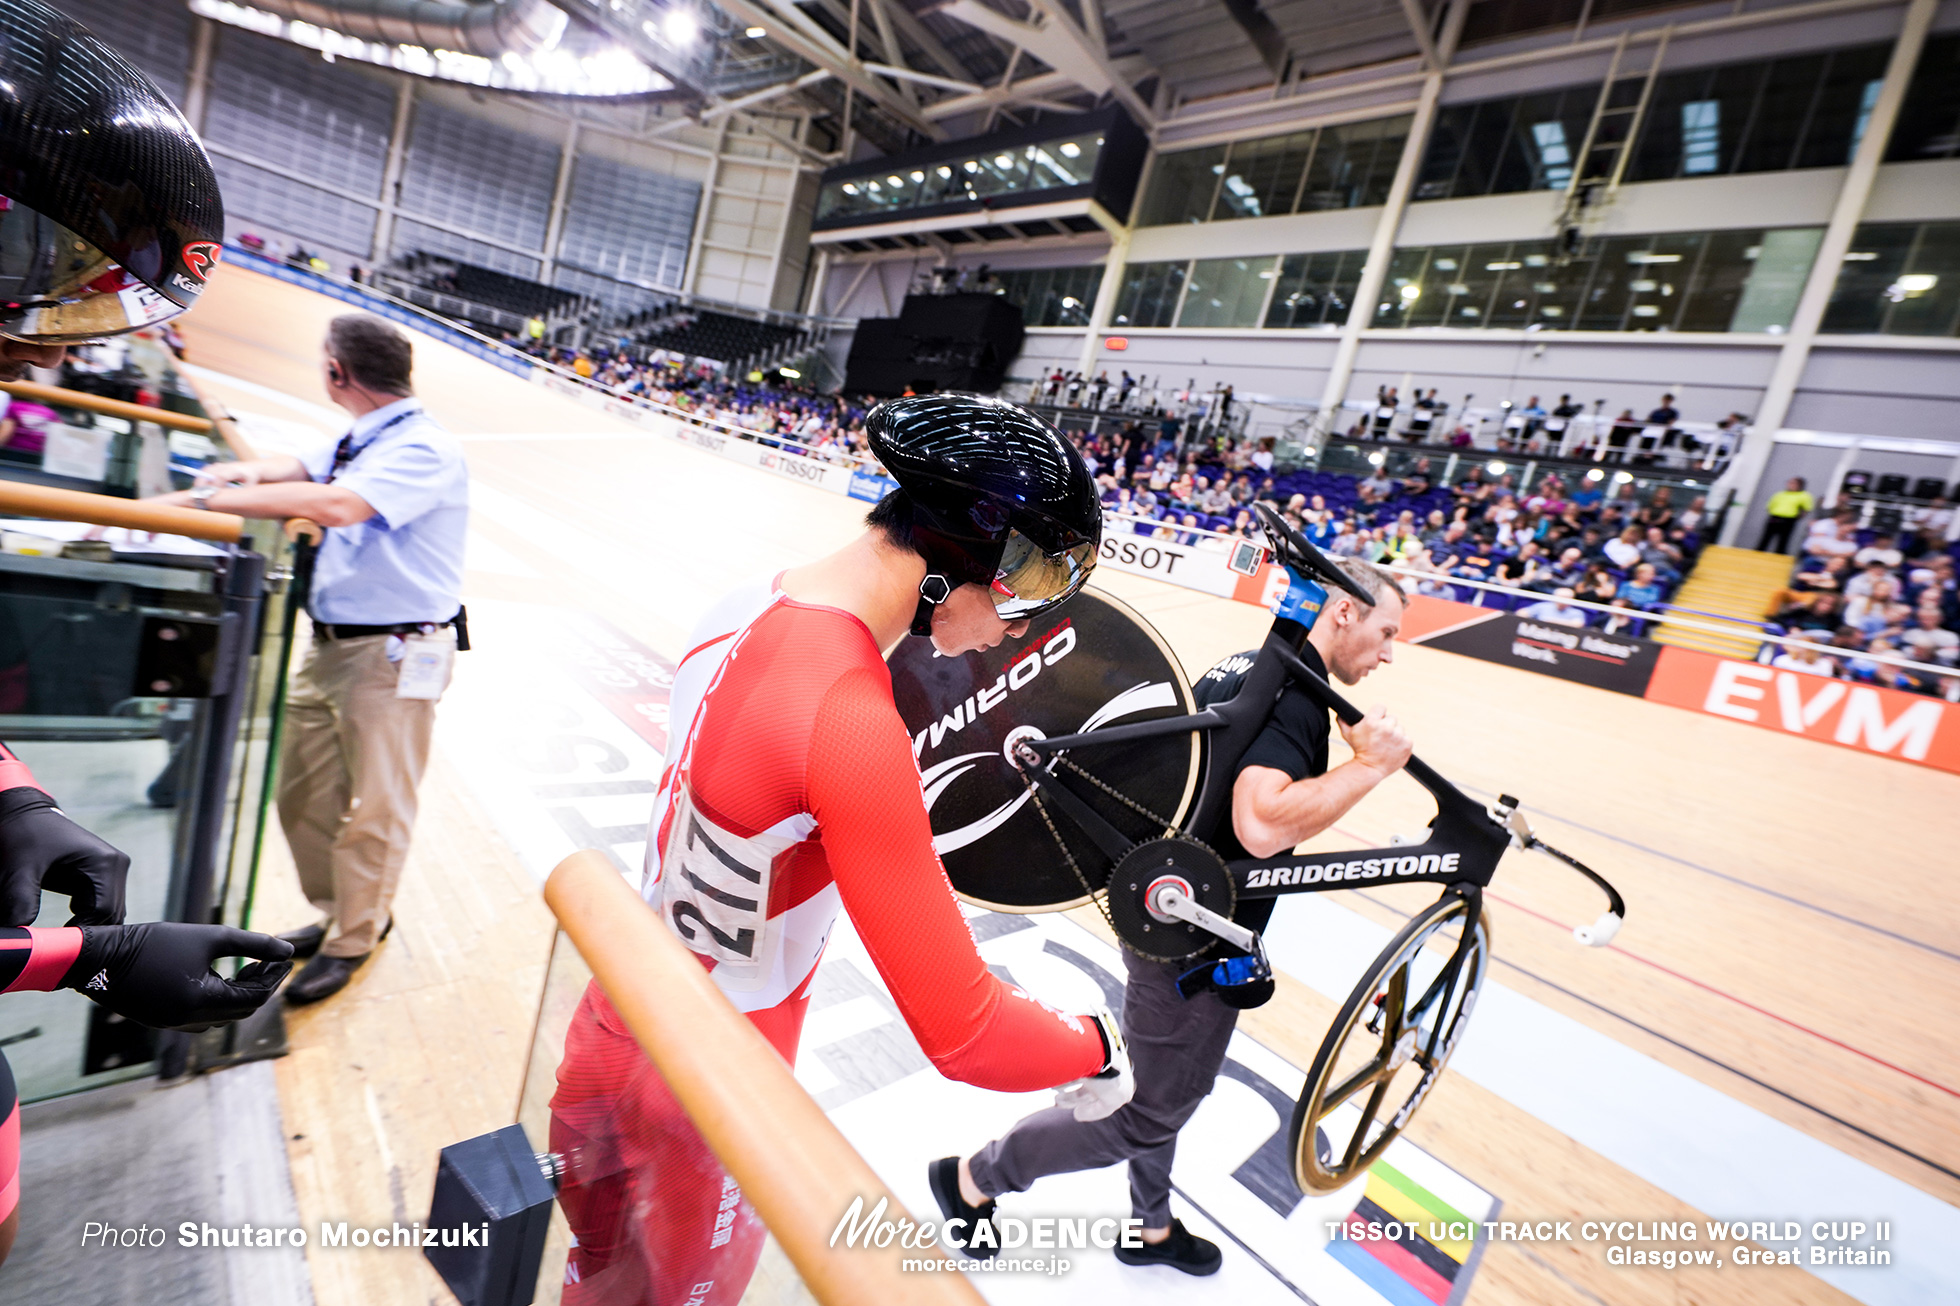 Repechage / Men's Keirin / TISSOT UCI TRACK CYCLING WORLD CUP II, Glasgow, Great Britain